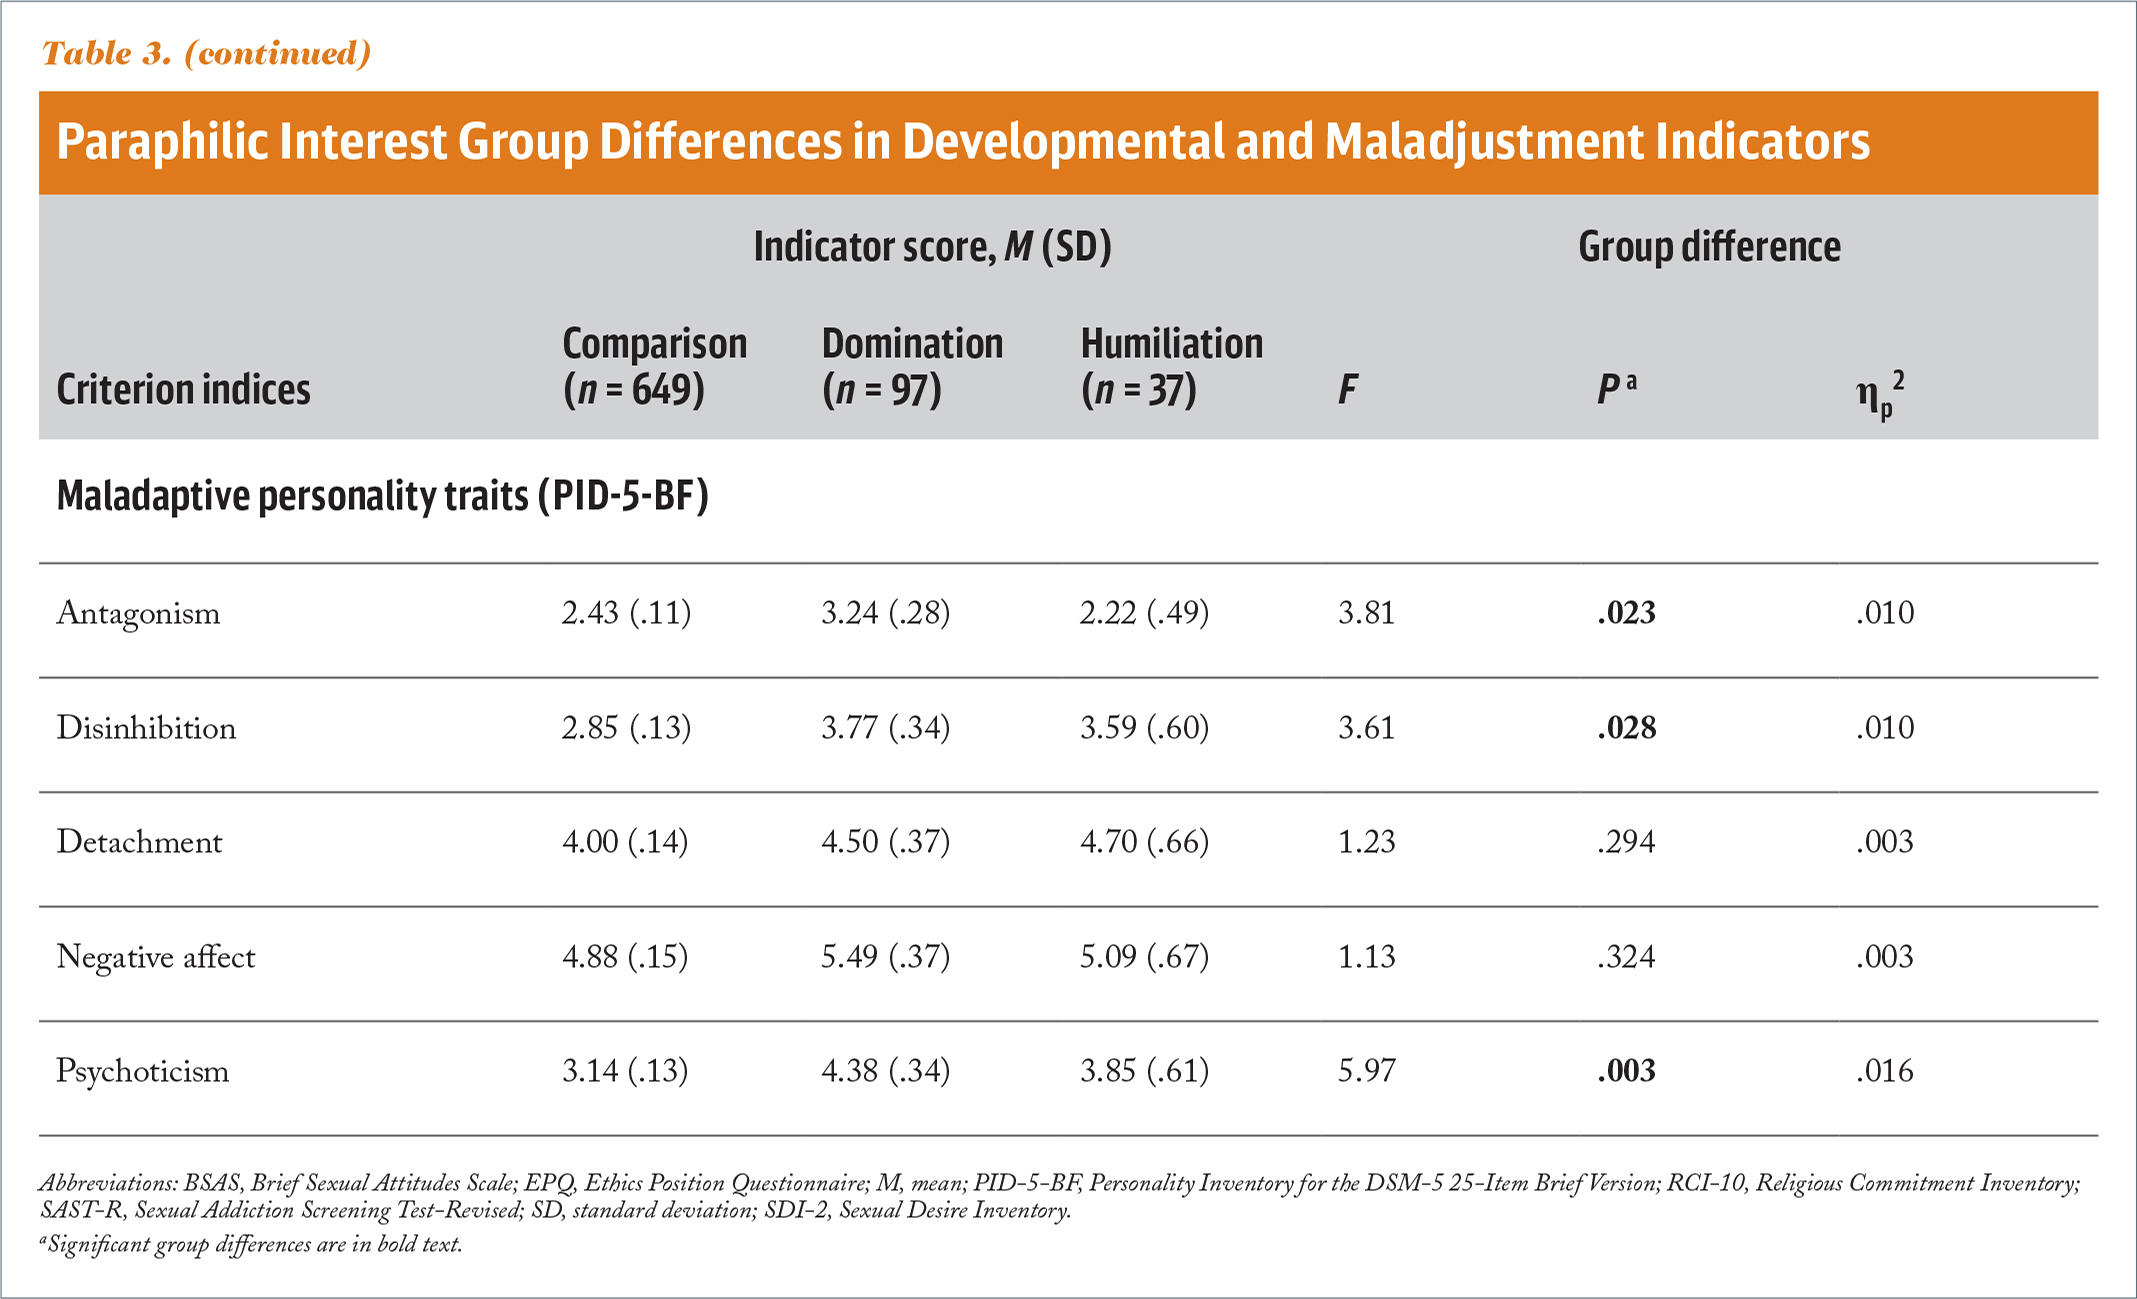 Paraphilic Interest Group Differences in Developmental and Maladjustment Indicators